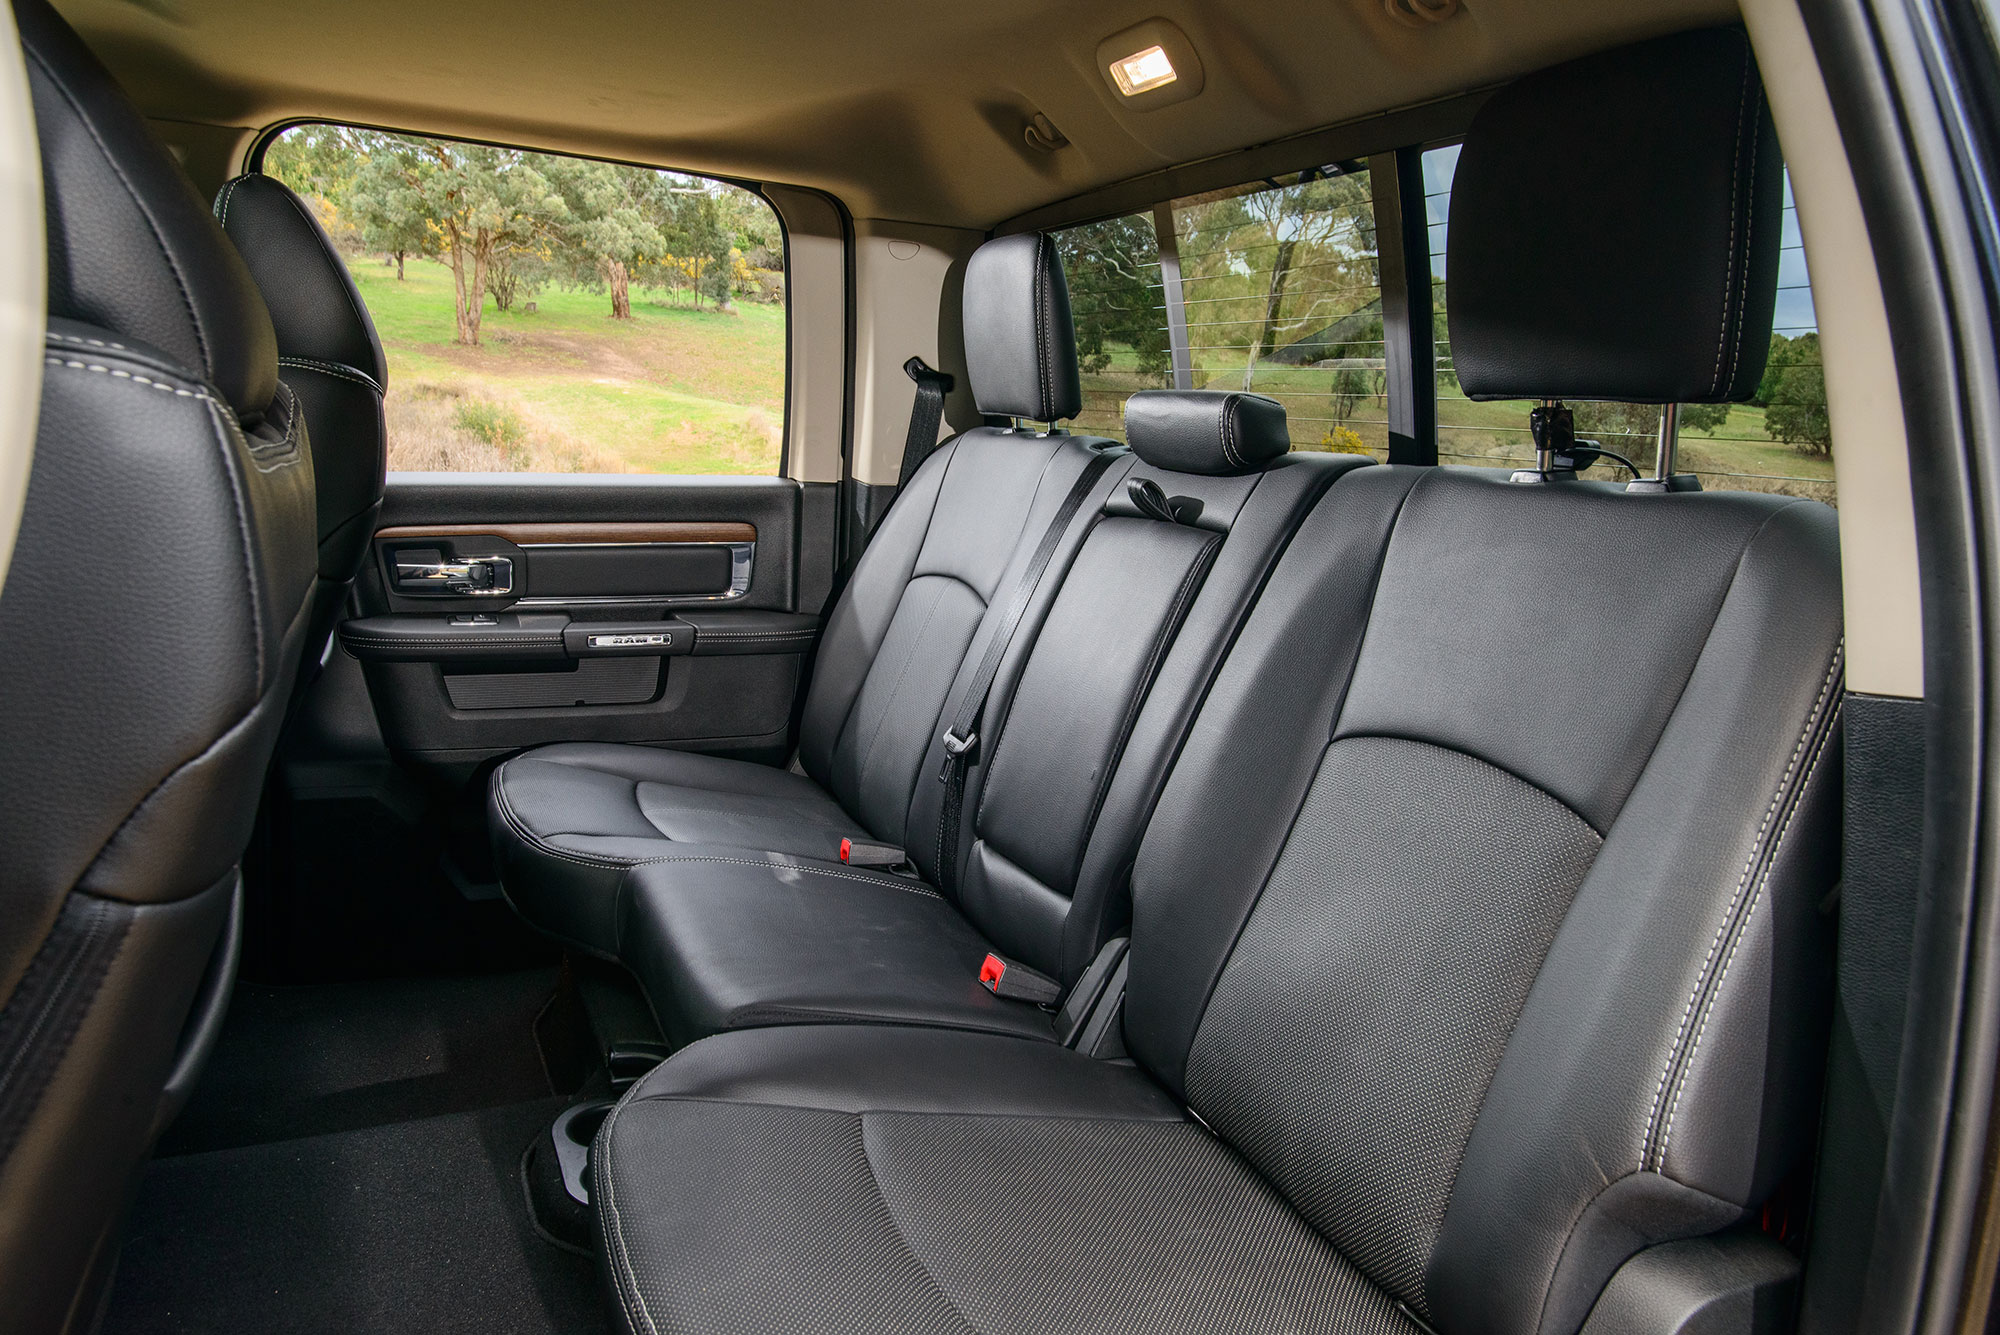 11 Where The Smaller Utes Can't Compete With The Us Trucks Like Ram, Is The Rear Seat Accommodation